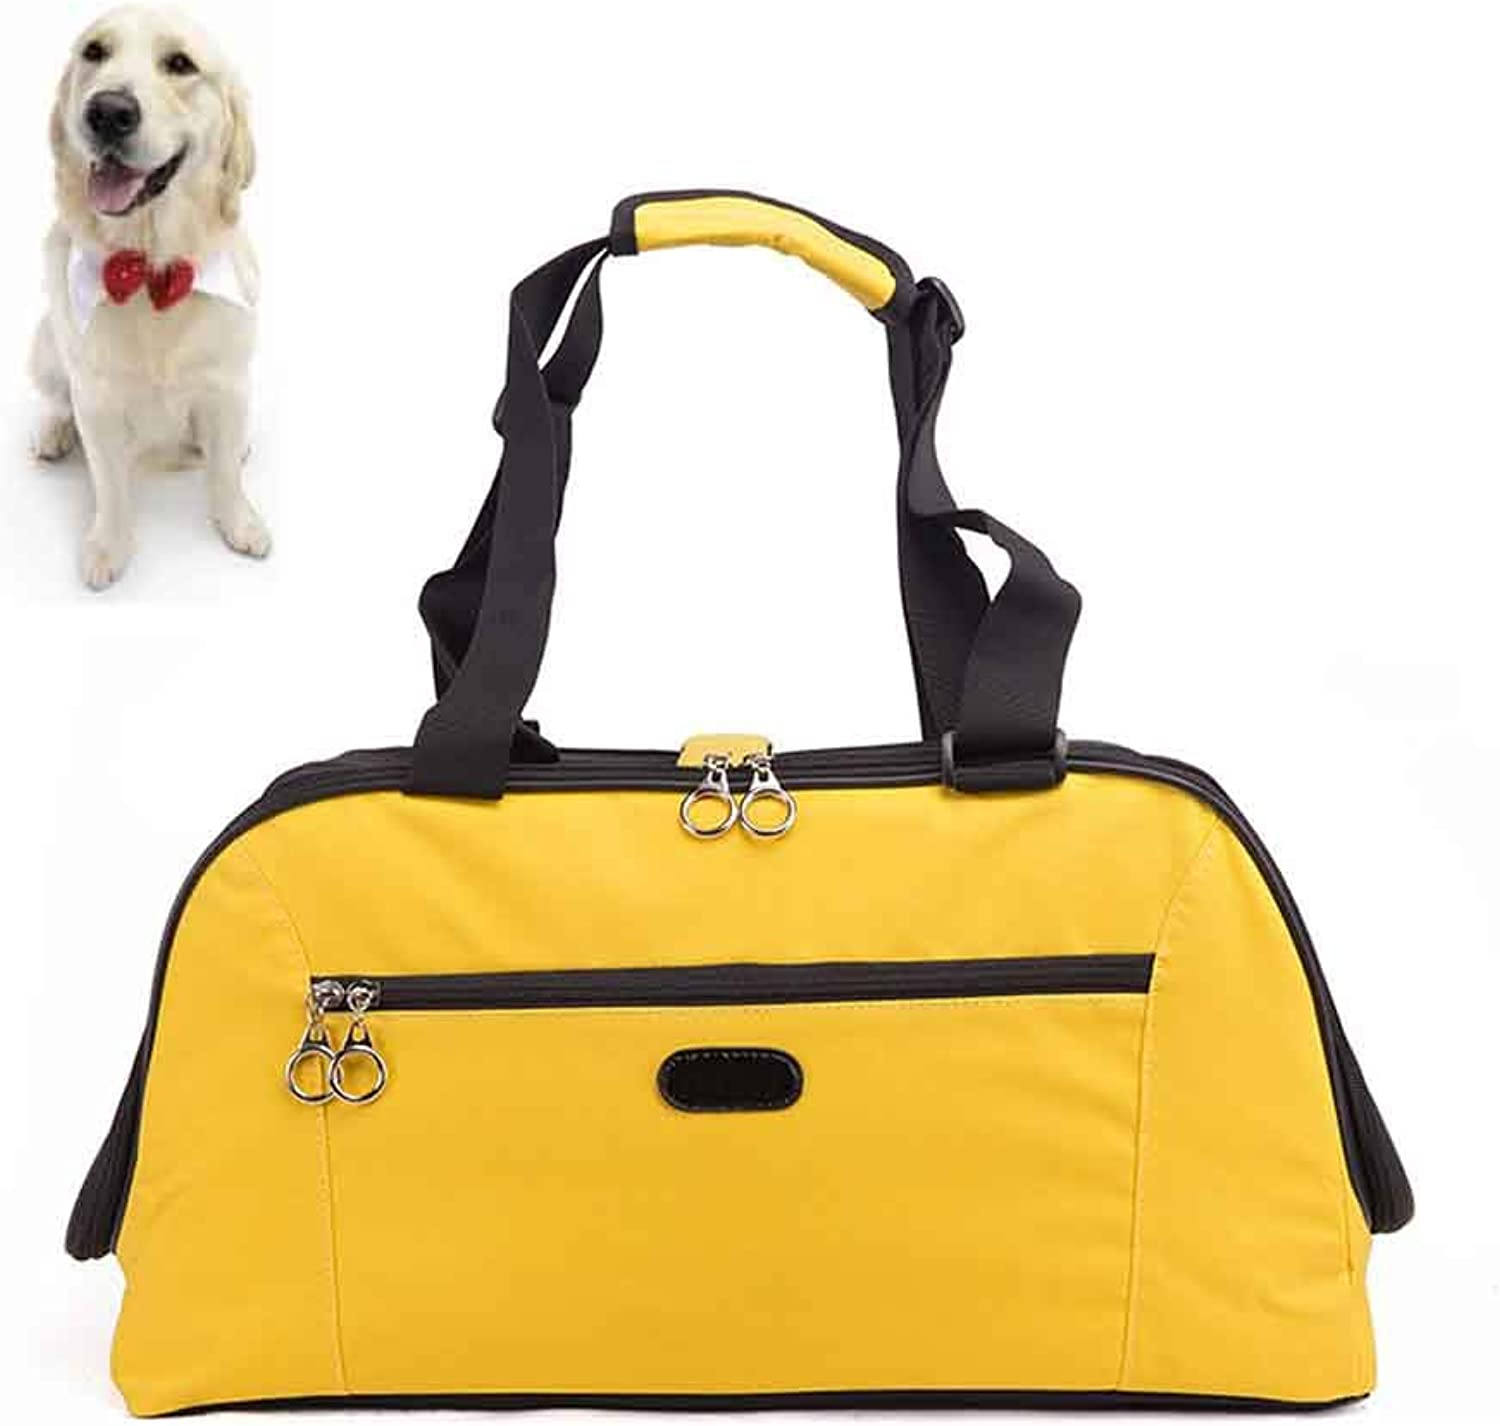 ACLBB Pet handbag, multifunction handbag, breathable travel bag, cat, dog